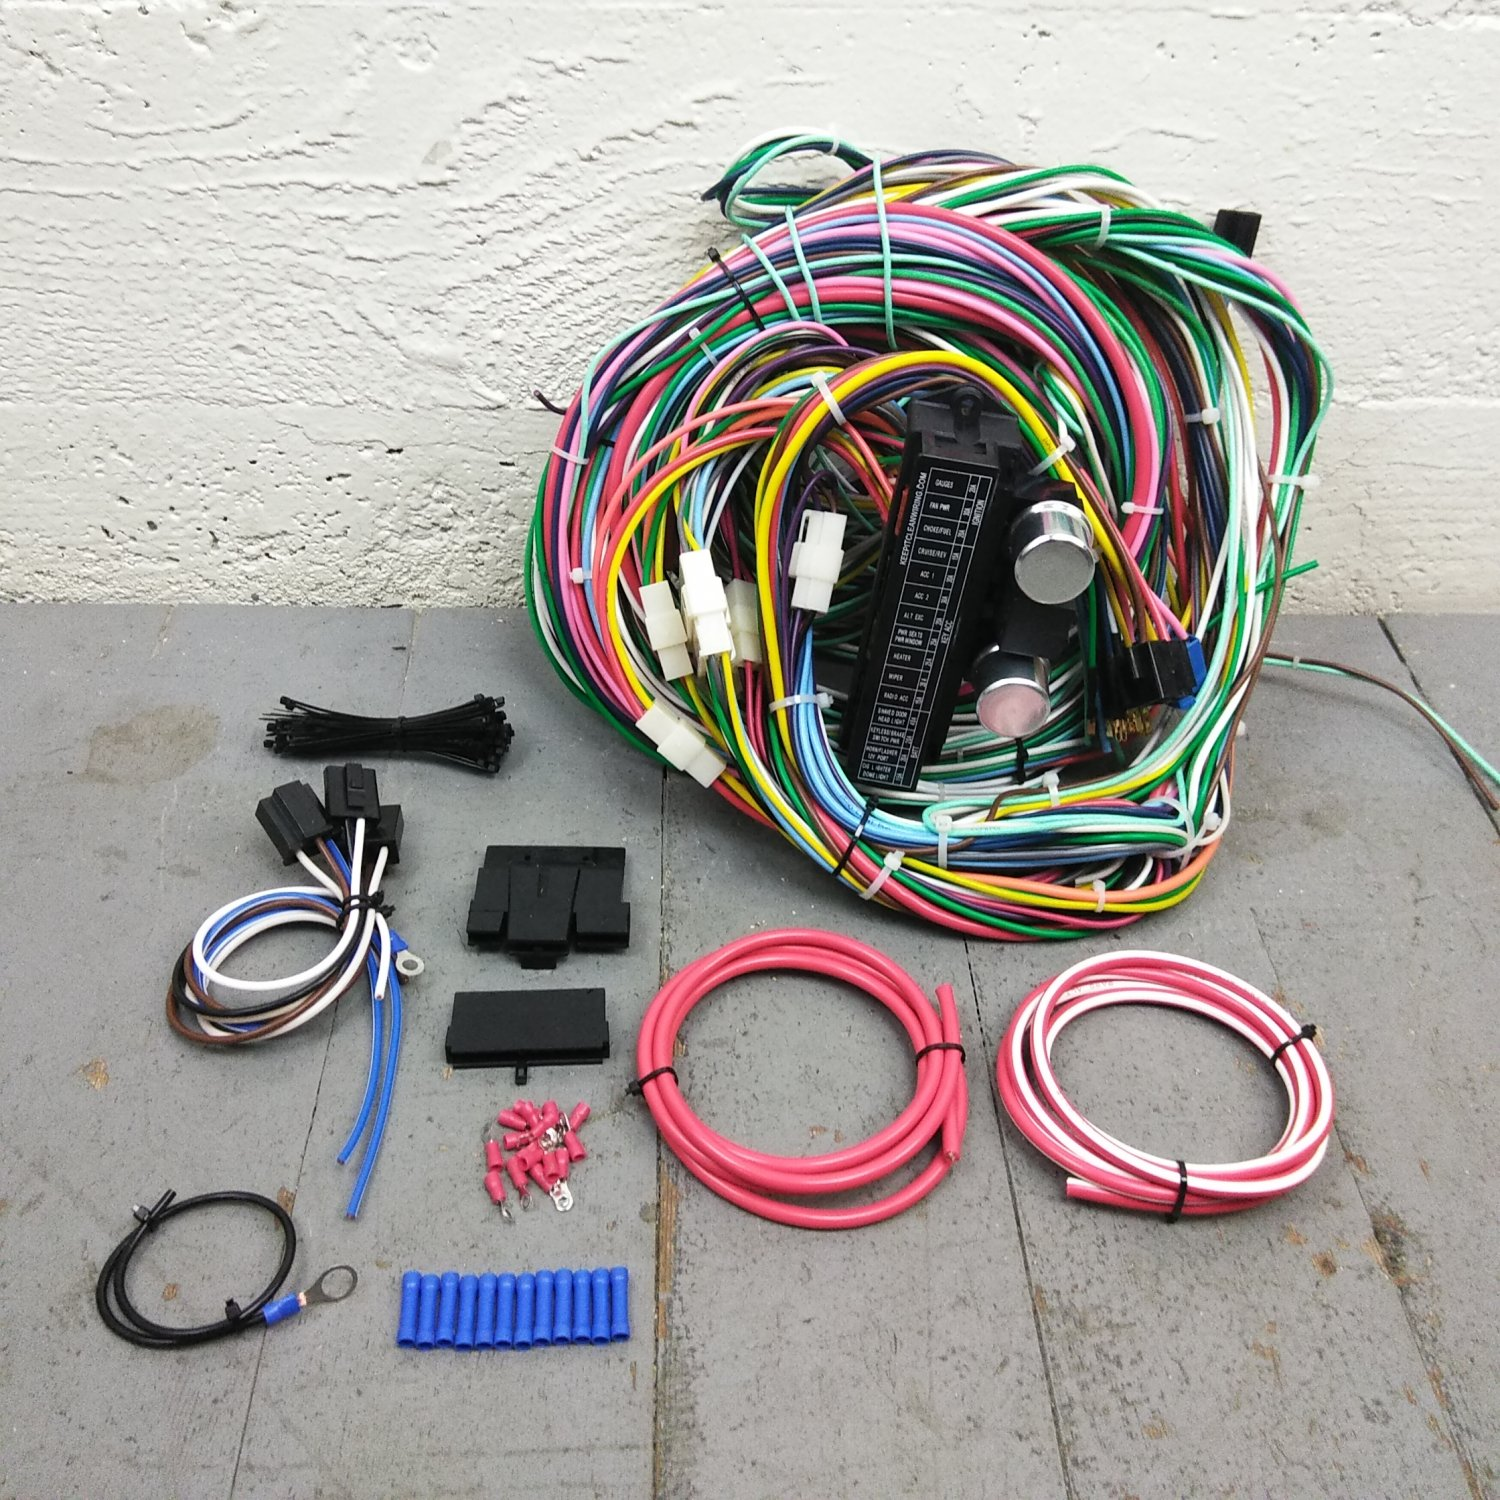 1971 - 1986 Jeep CJ Wire Harness Upgrade Kit fits painless fuse block  terminal. Bar_Product_Description_C